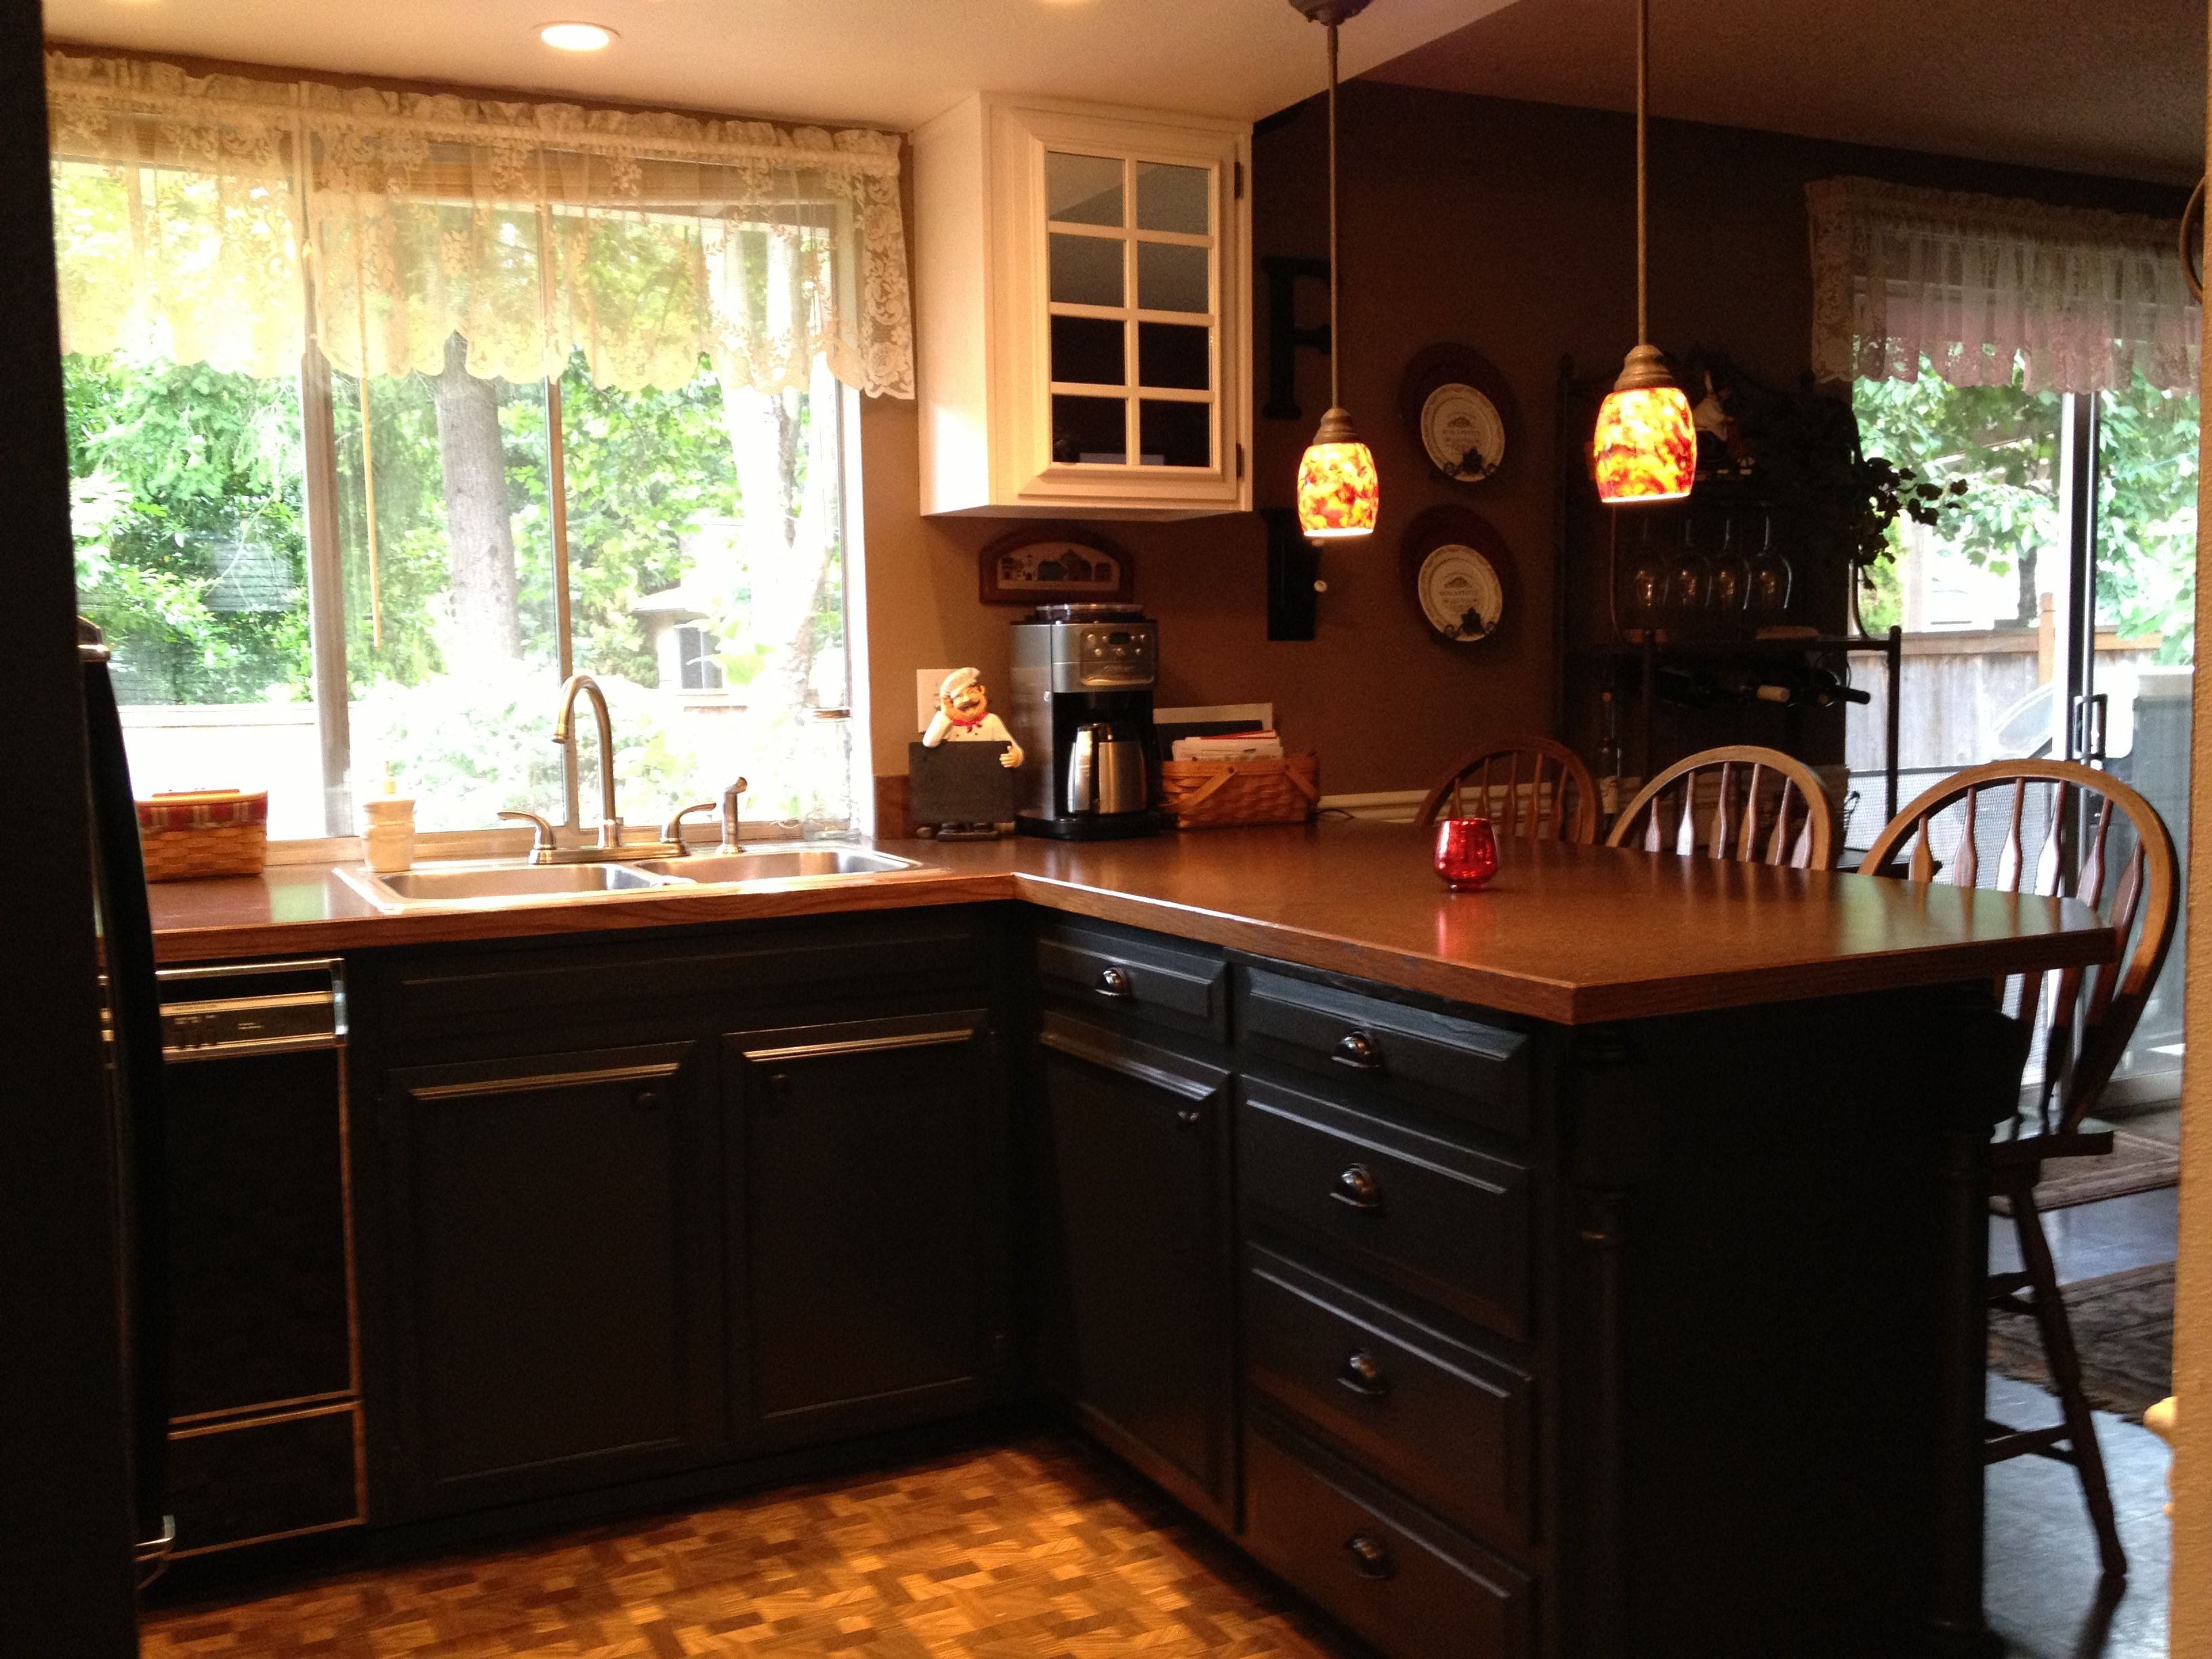 Black Base Cabinets White Upper Cabinets Did It Painted My Kitchen Base Cabinets Black Love The